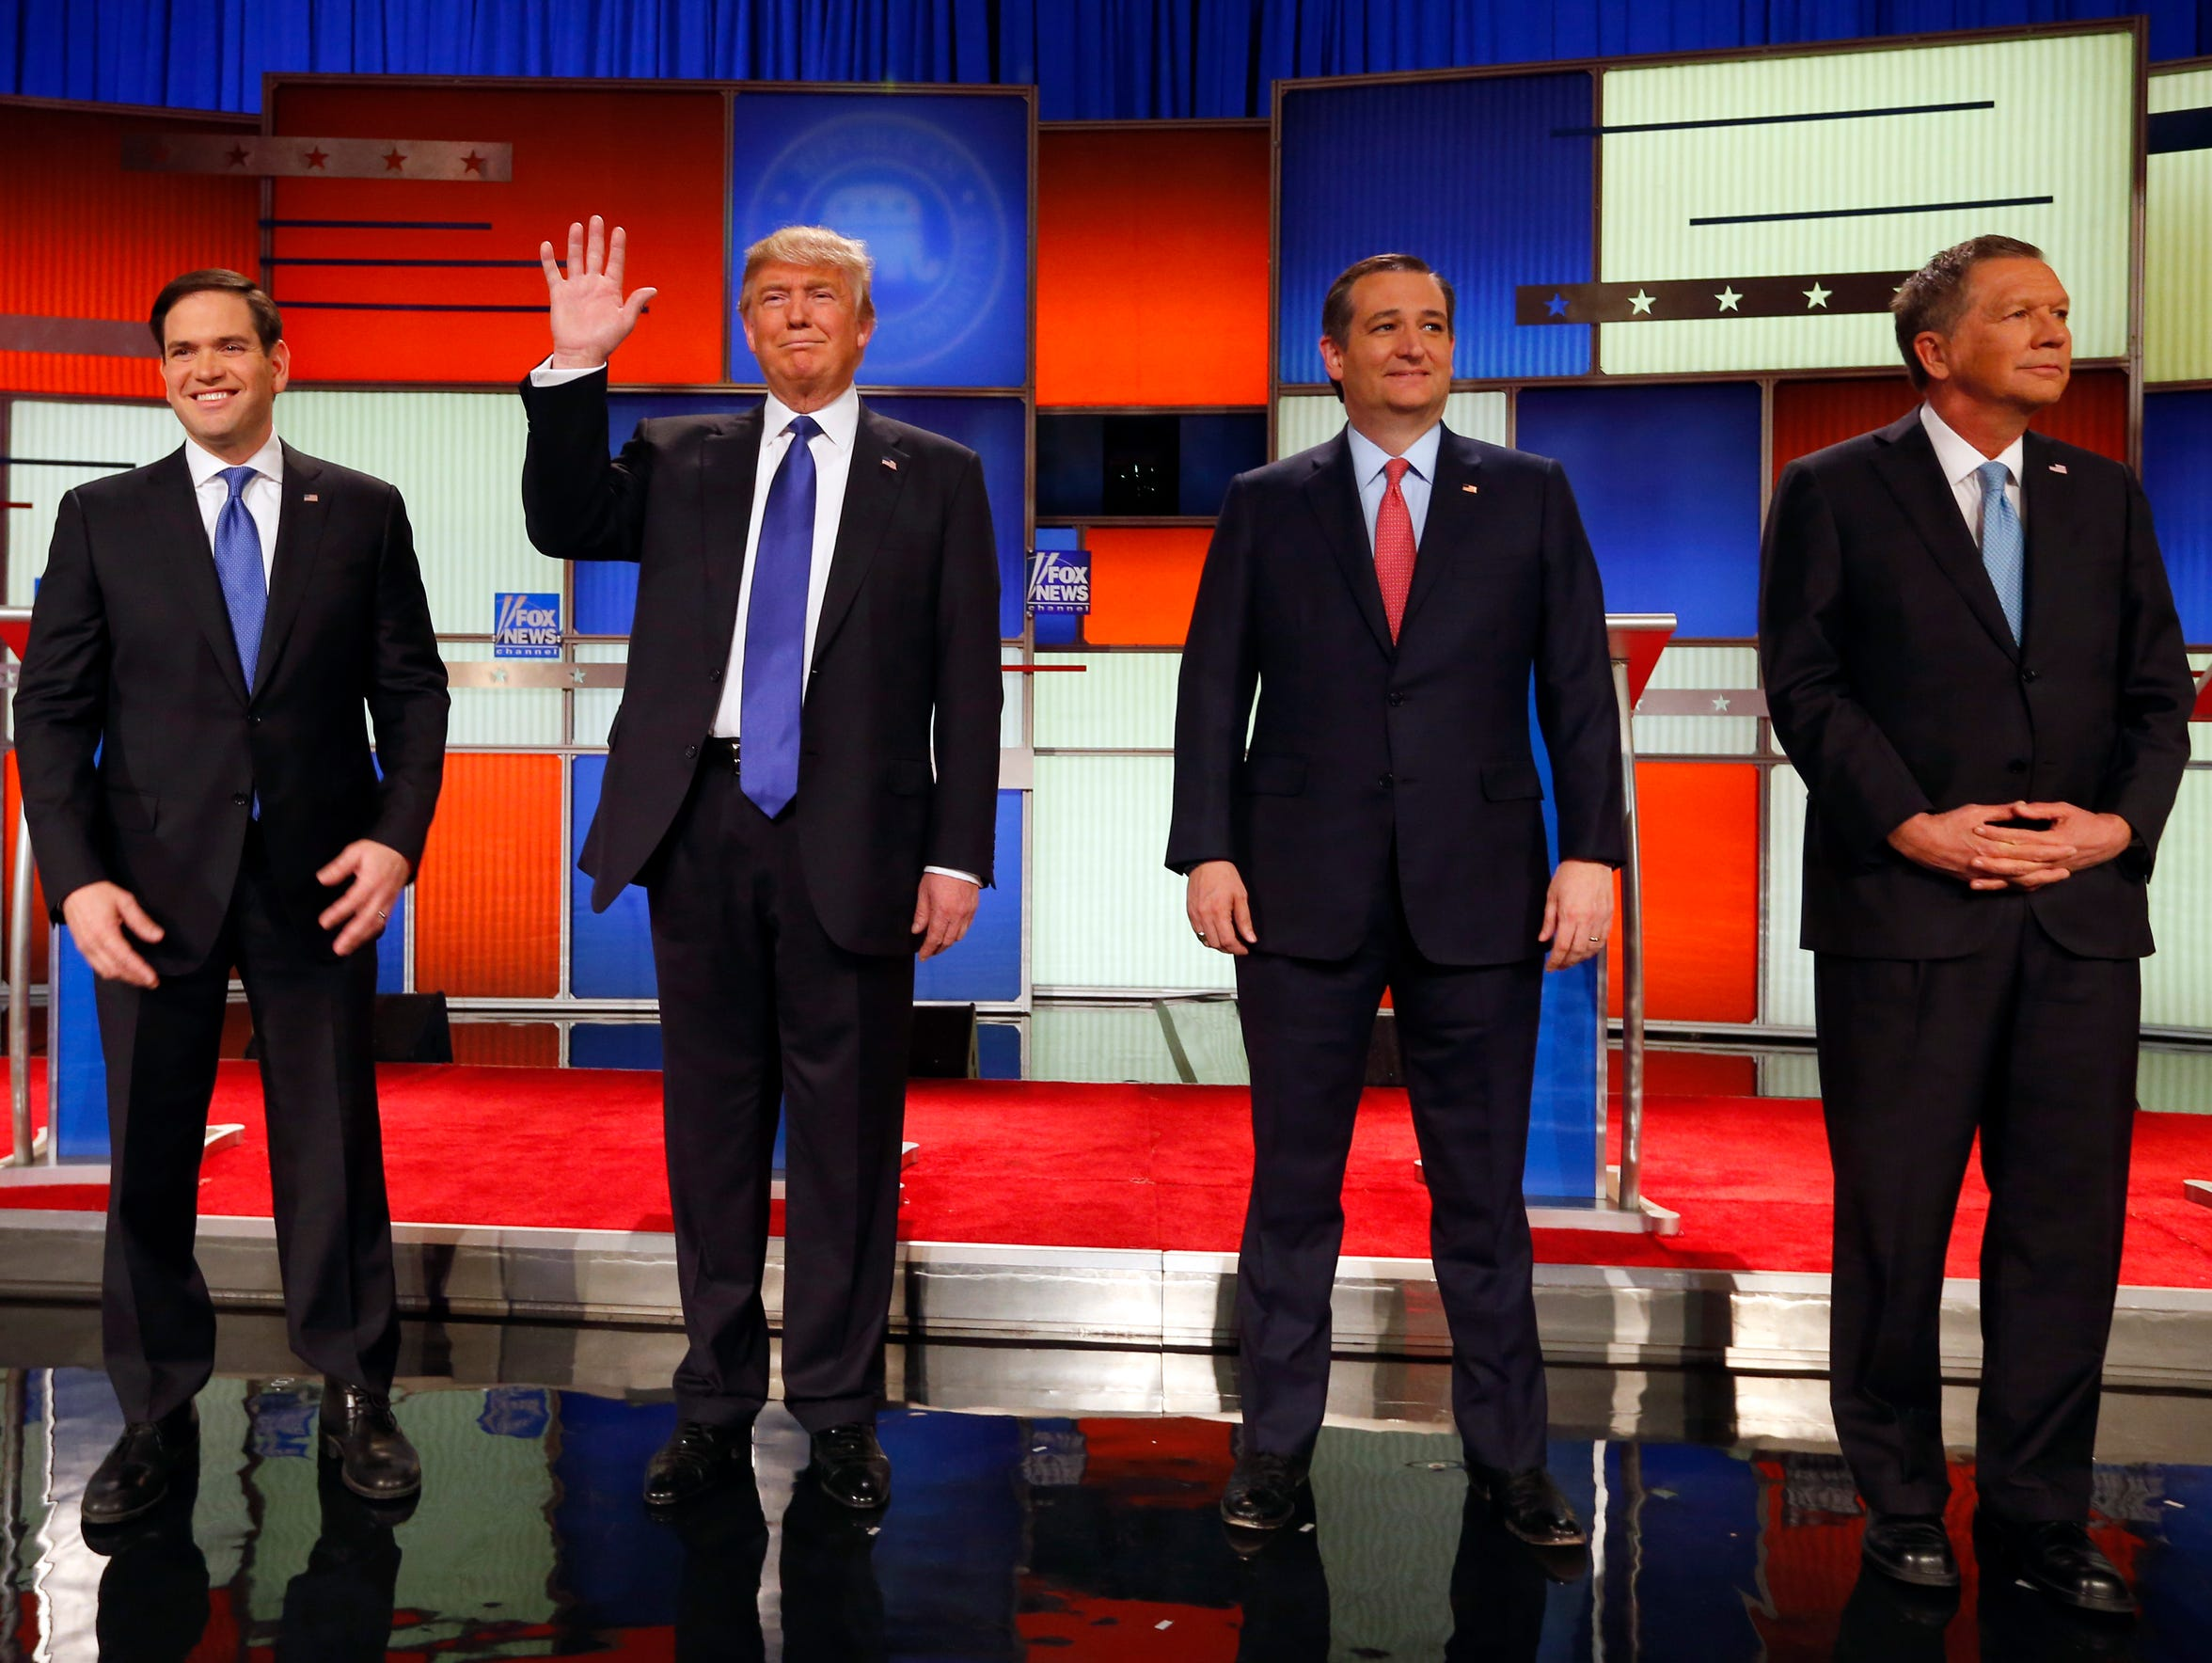 Republican presidential candidates Marco Rubio, Donald